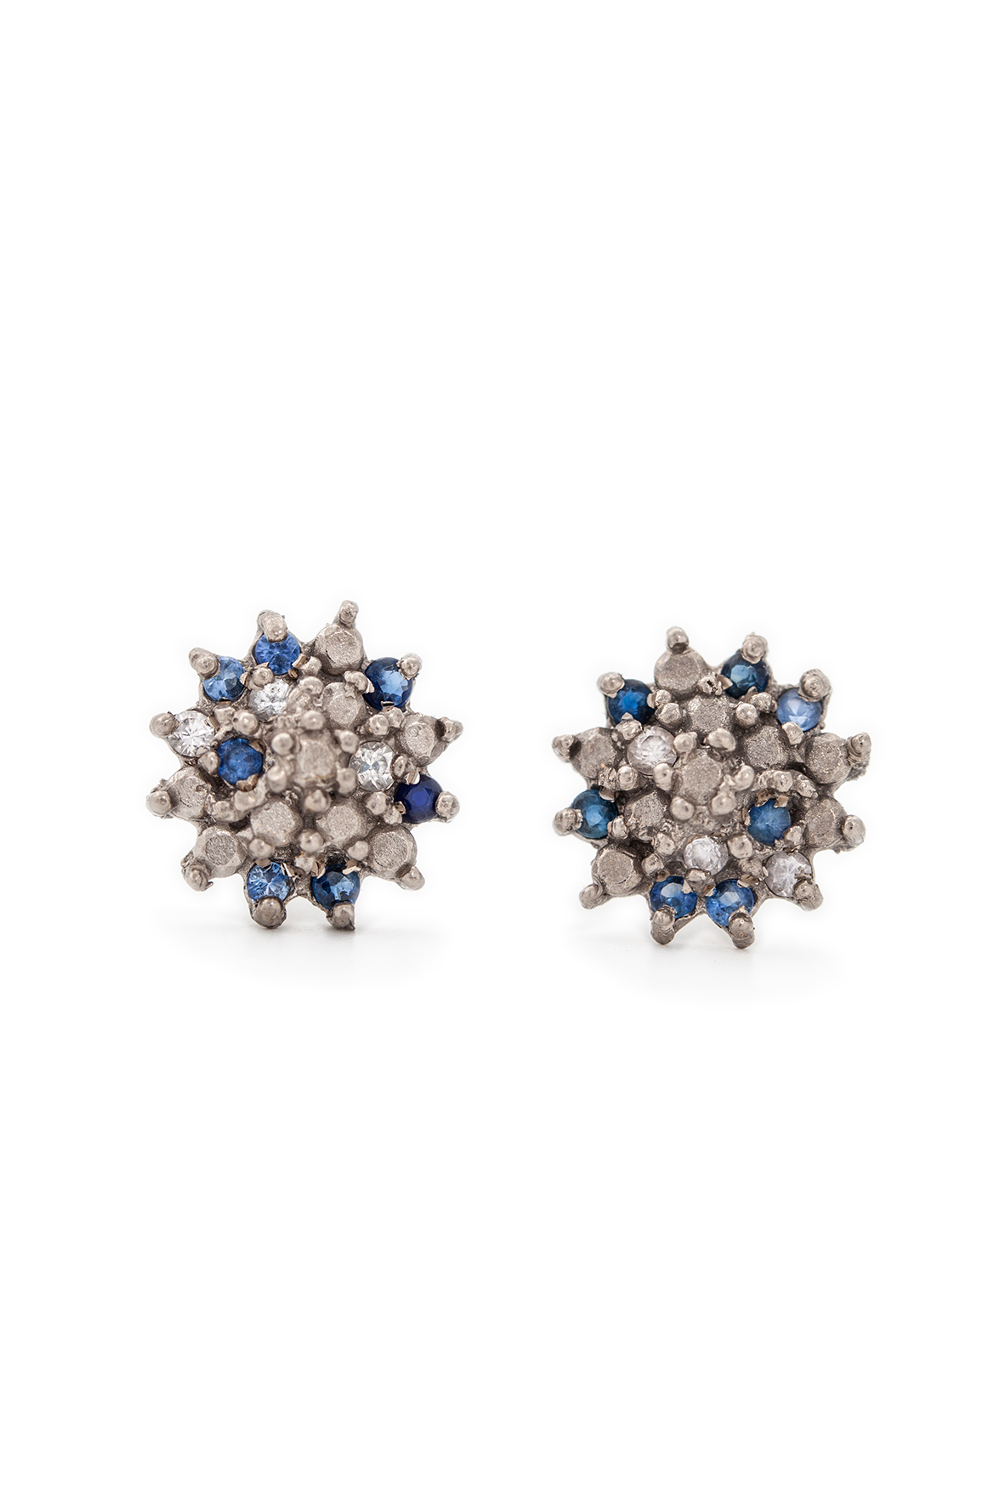 Multi coloured sapphire star studs in white gold, £860